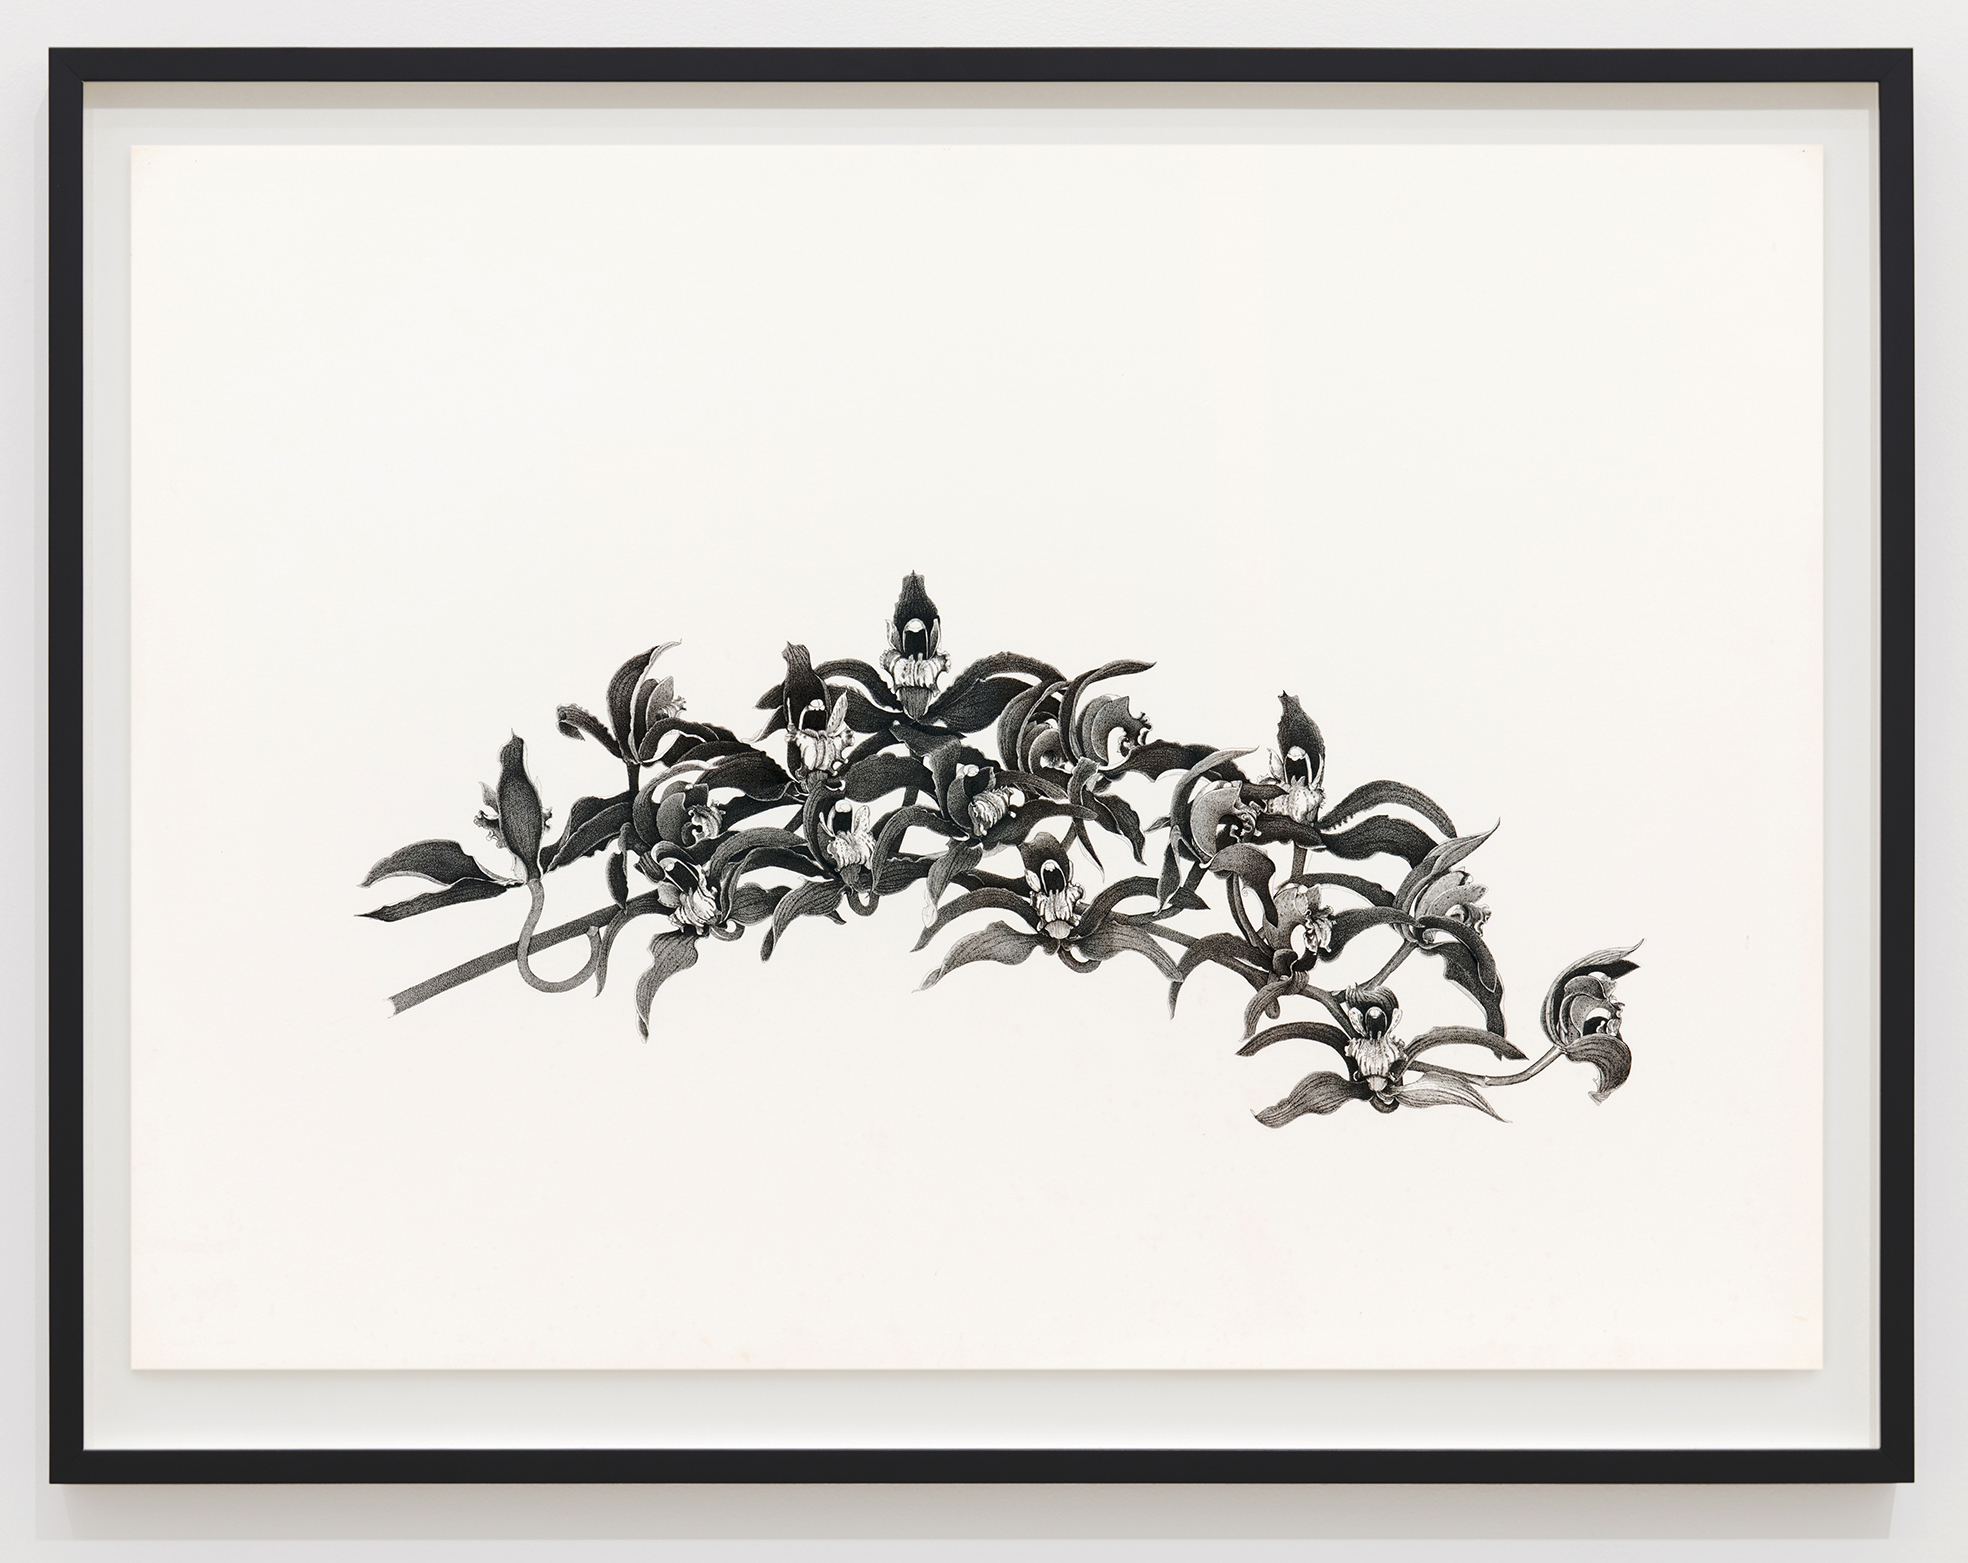 Charmian Johnson, not titled, 1980, ink and graphite on paper, 26 x 34 in. (65 x 85 cm) by